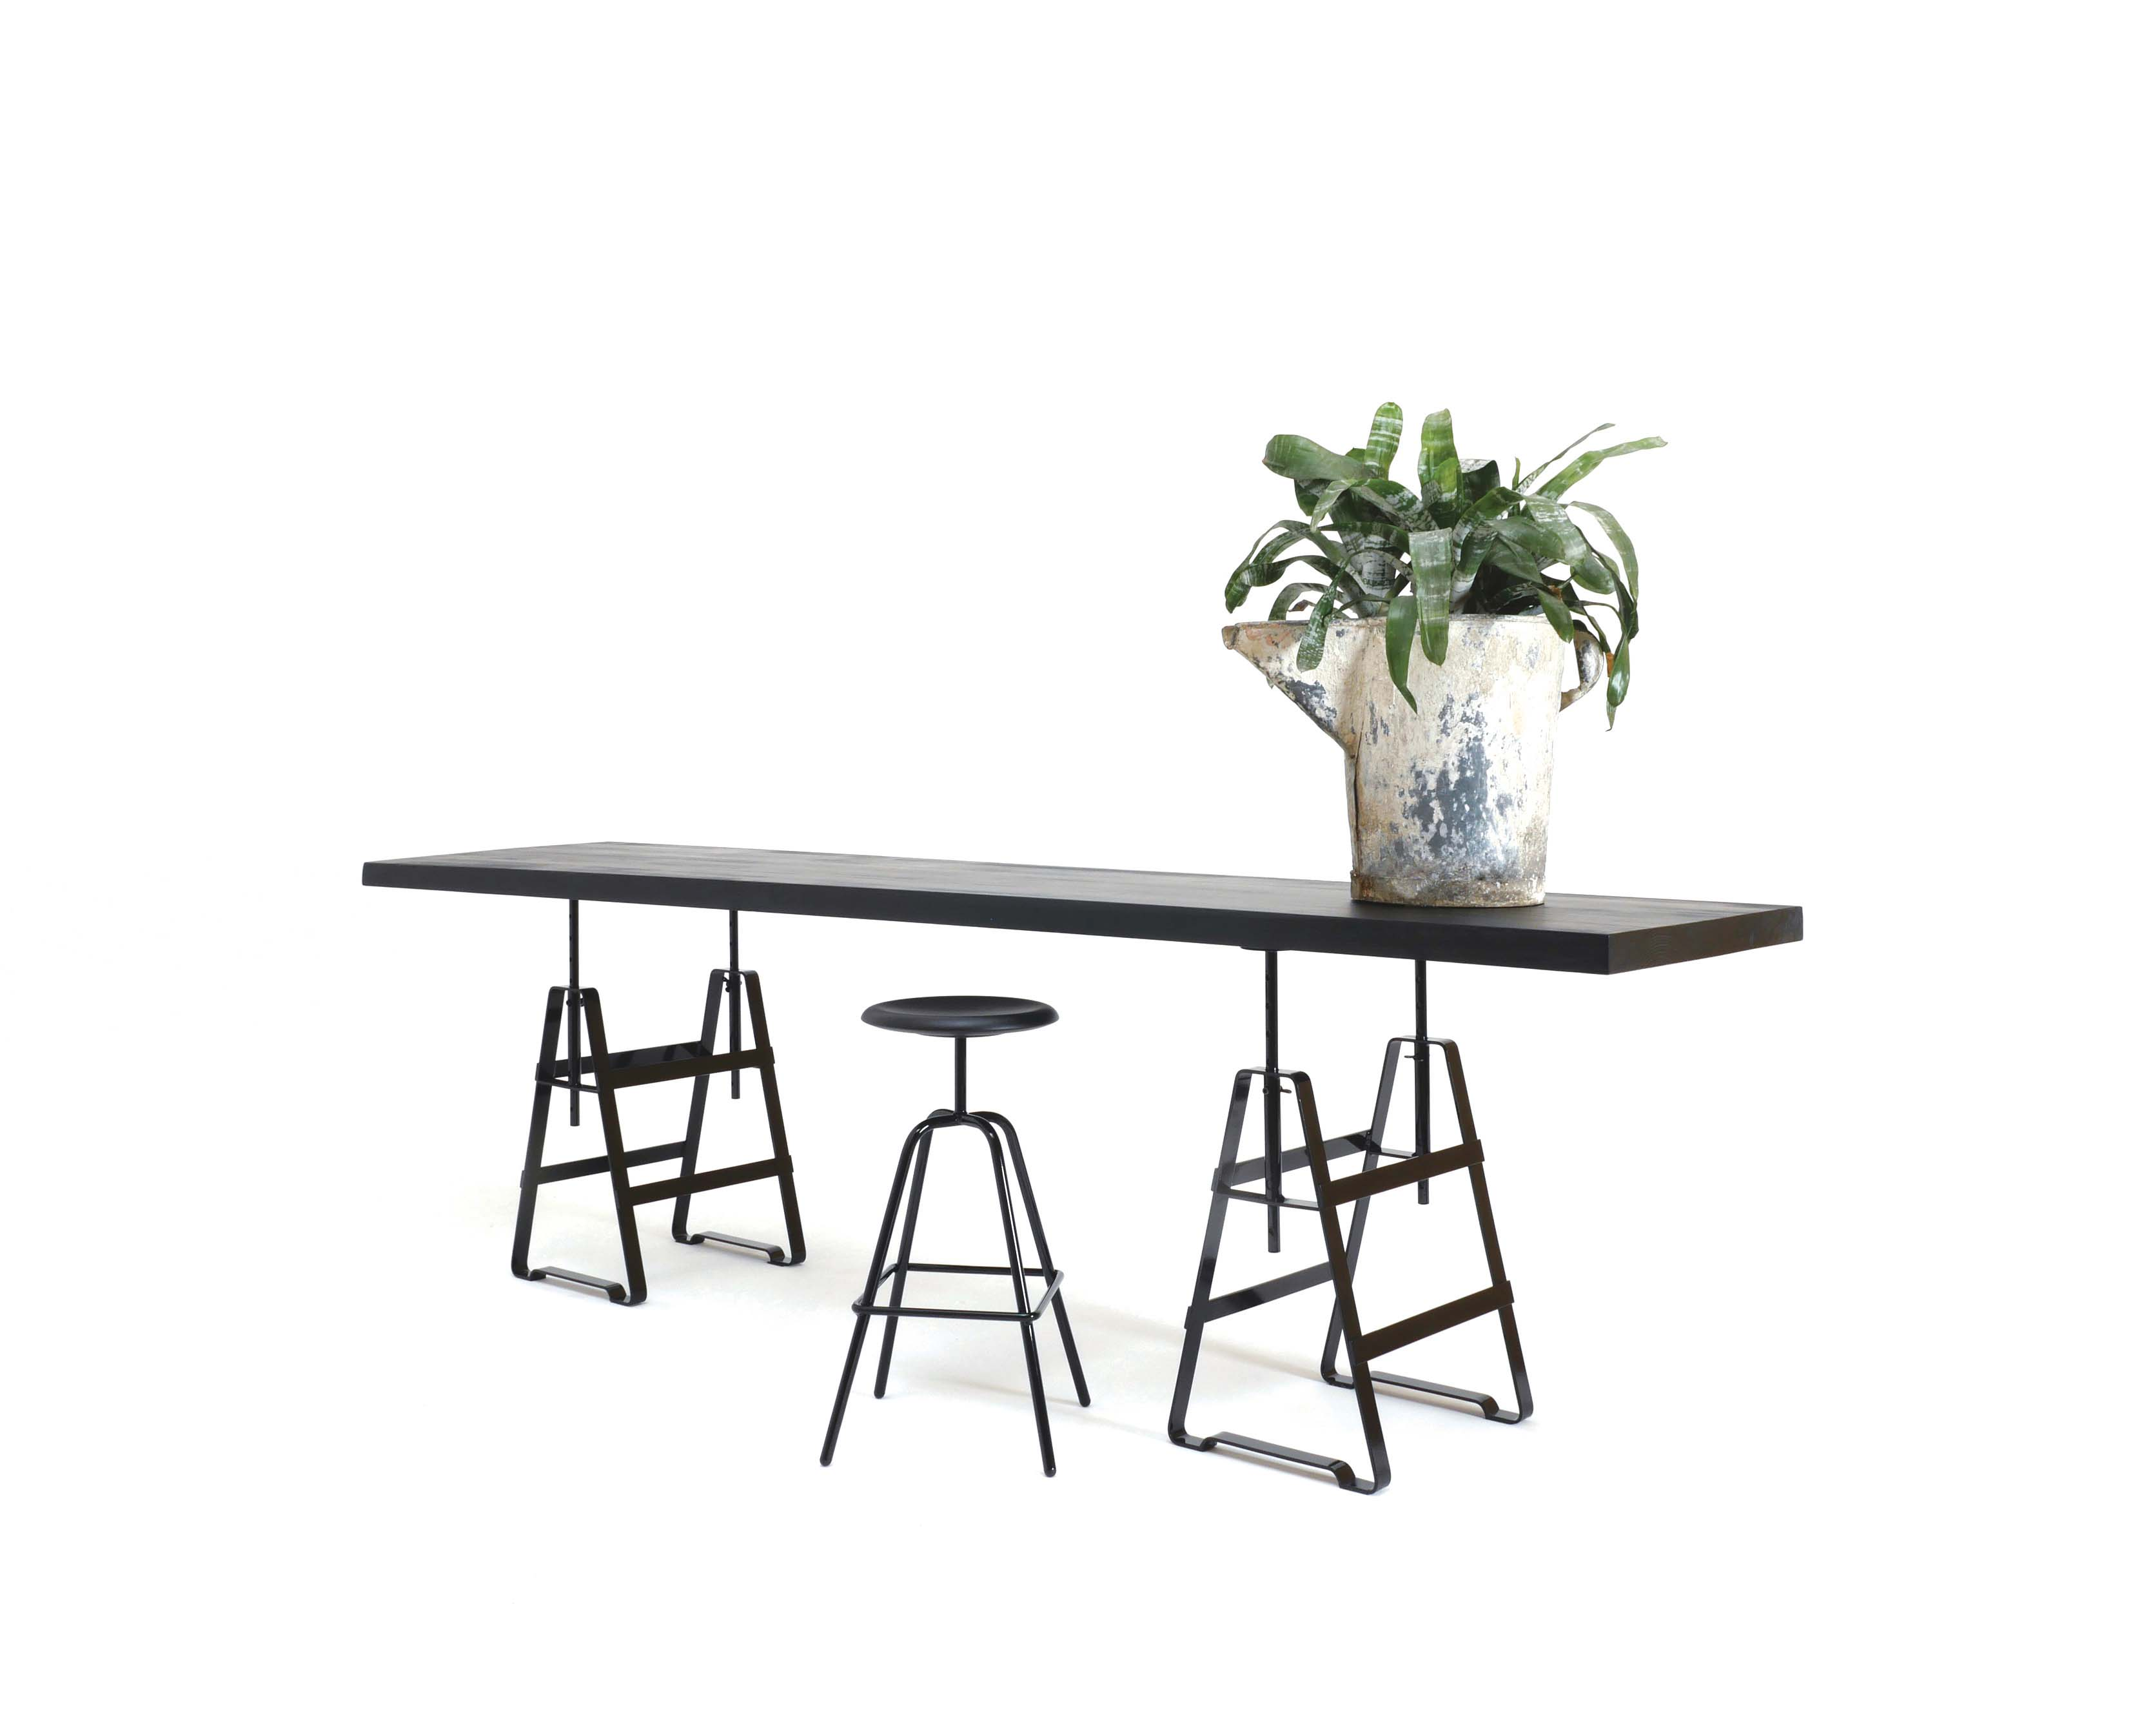 A height adjustable trestle made from oiled crude steel. It is applicable with several shelves and slabs. The same variable as Affe but powder-coated plays Lackaffe with the image of solid steel furniture.Table top from Zascho Petkow for ABC New York